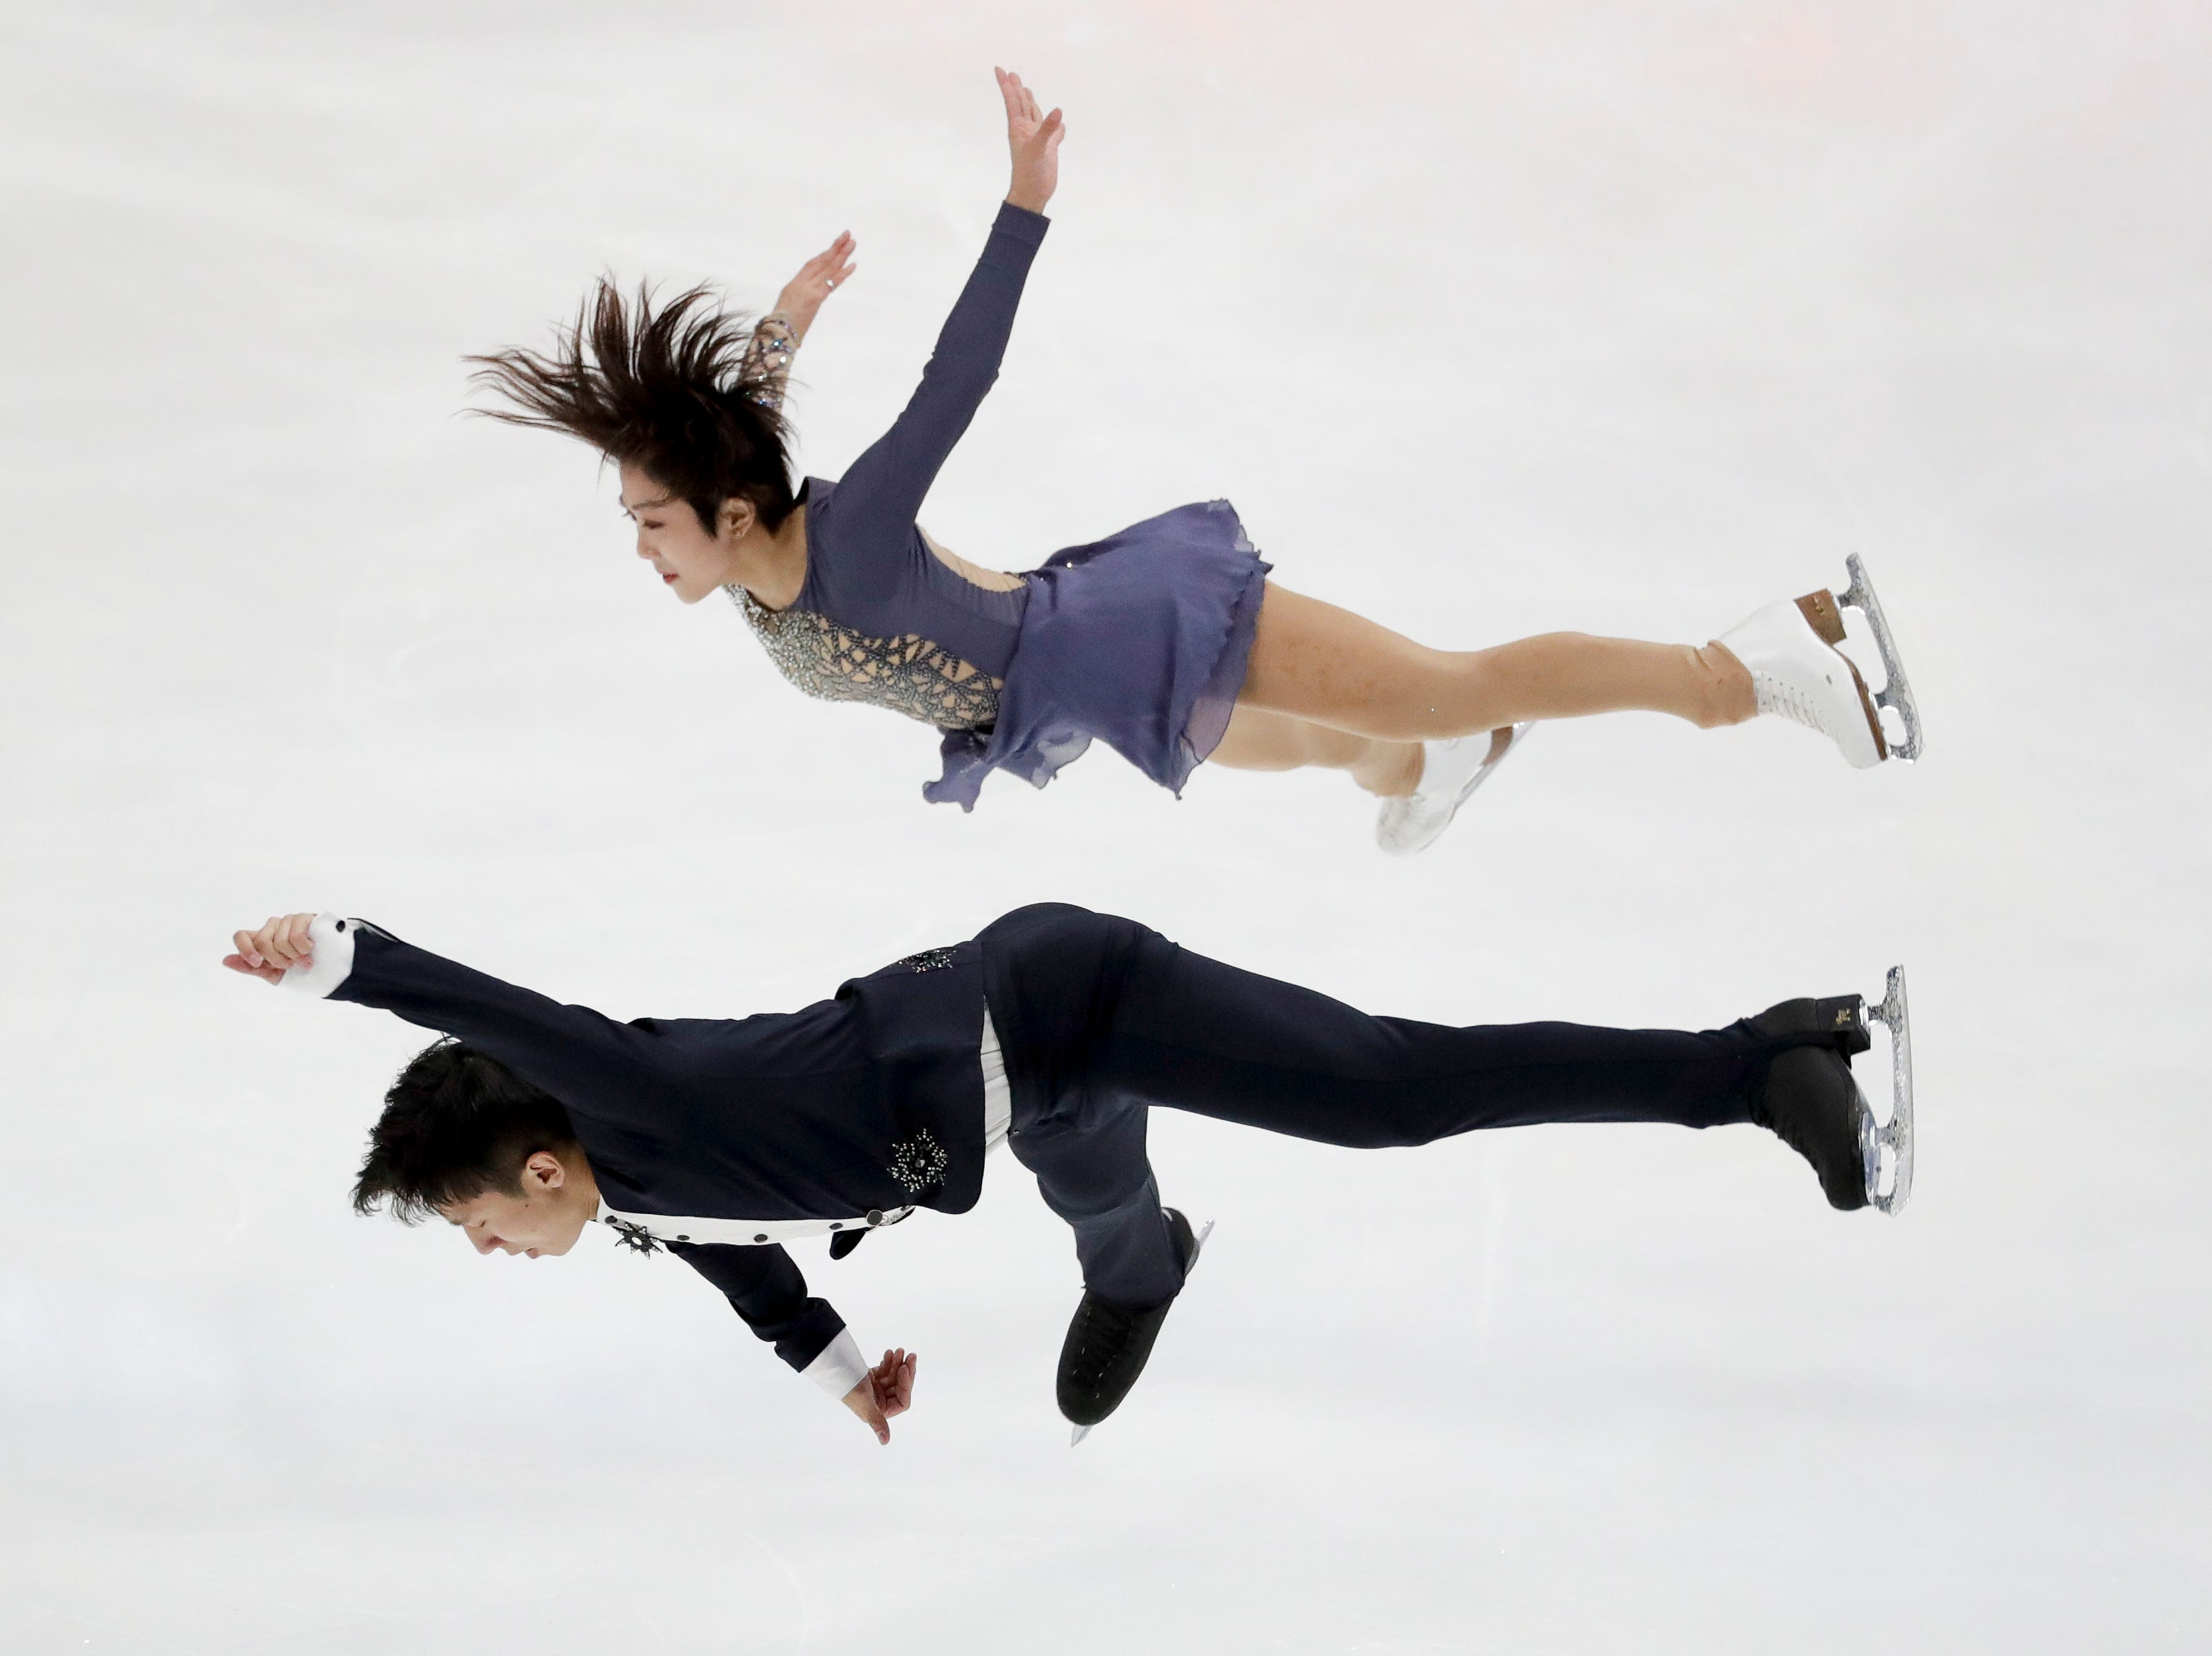 Wenjing Sui and Han Cong, of China, perform during the pairs short program at the Four Continents Figure Skating Championships on Friday, Feb. 8, 2019, in Anaheim, Calif.